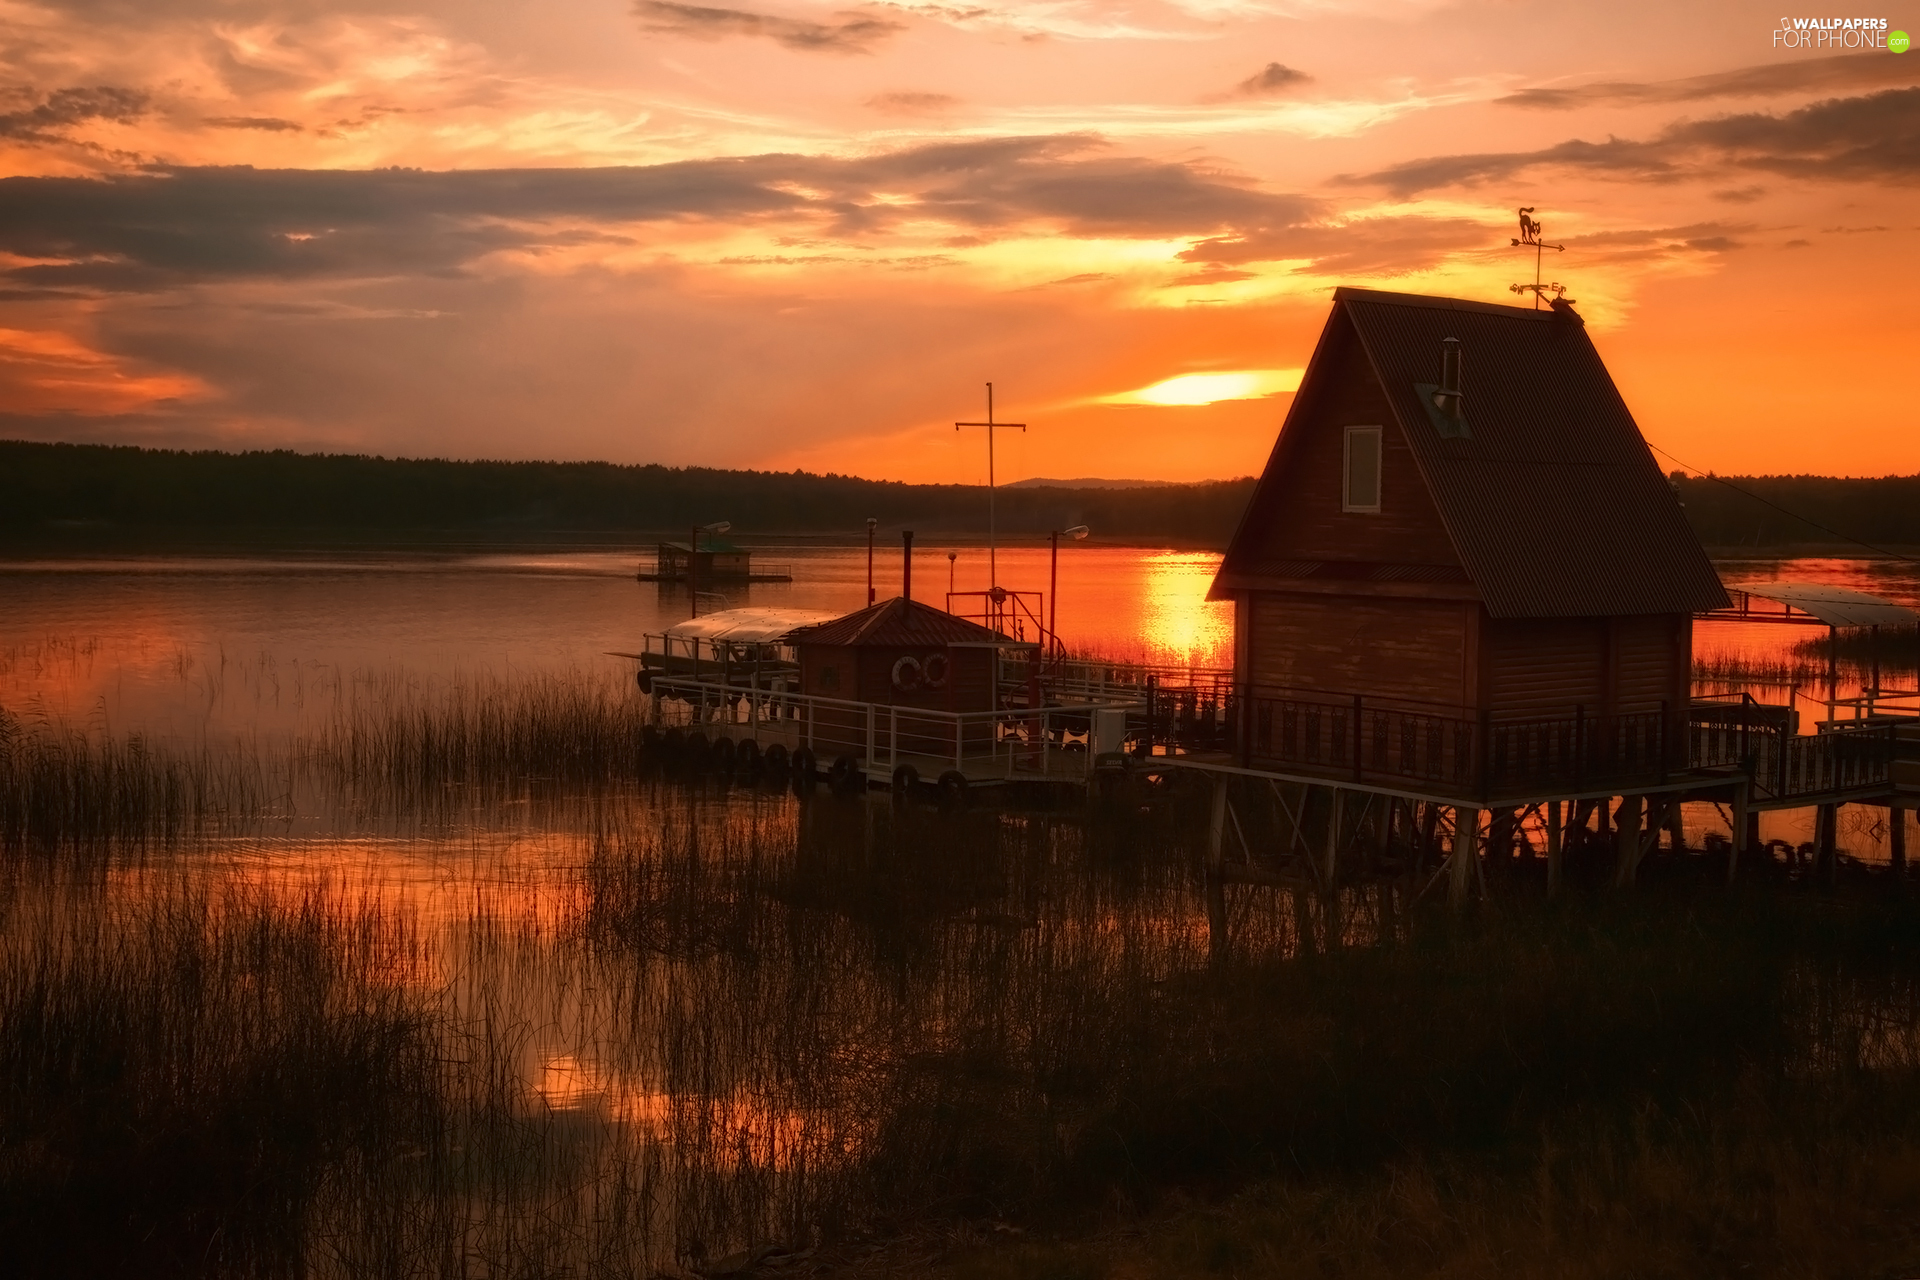 Platform, Harbour, rushes, Great Sunsets, house, lake